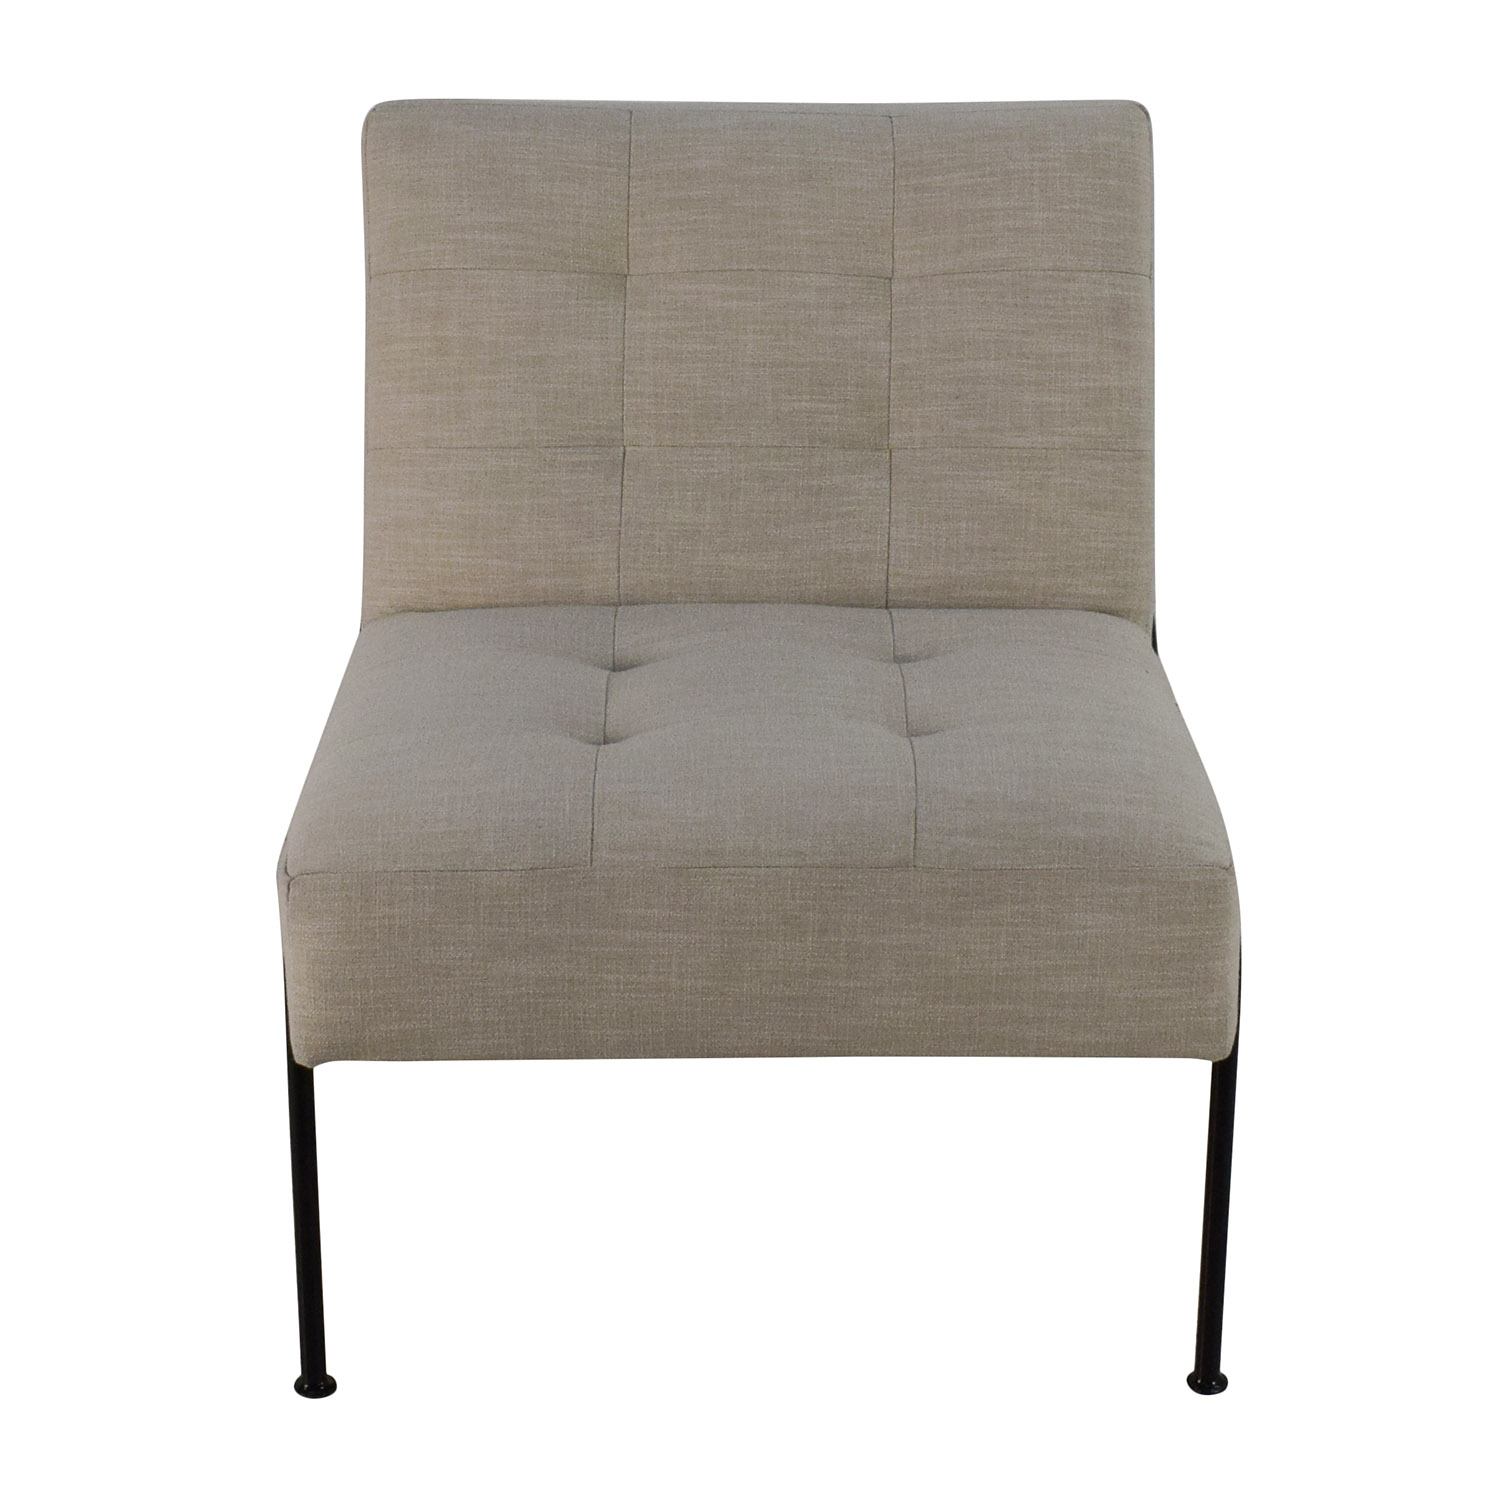 West Elm West Elm Oswald Tufted Slipper Chair for sale